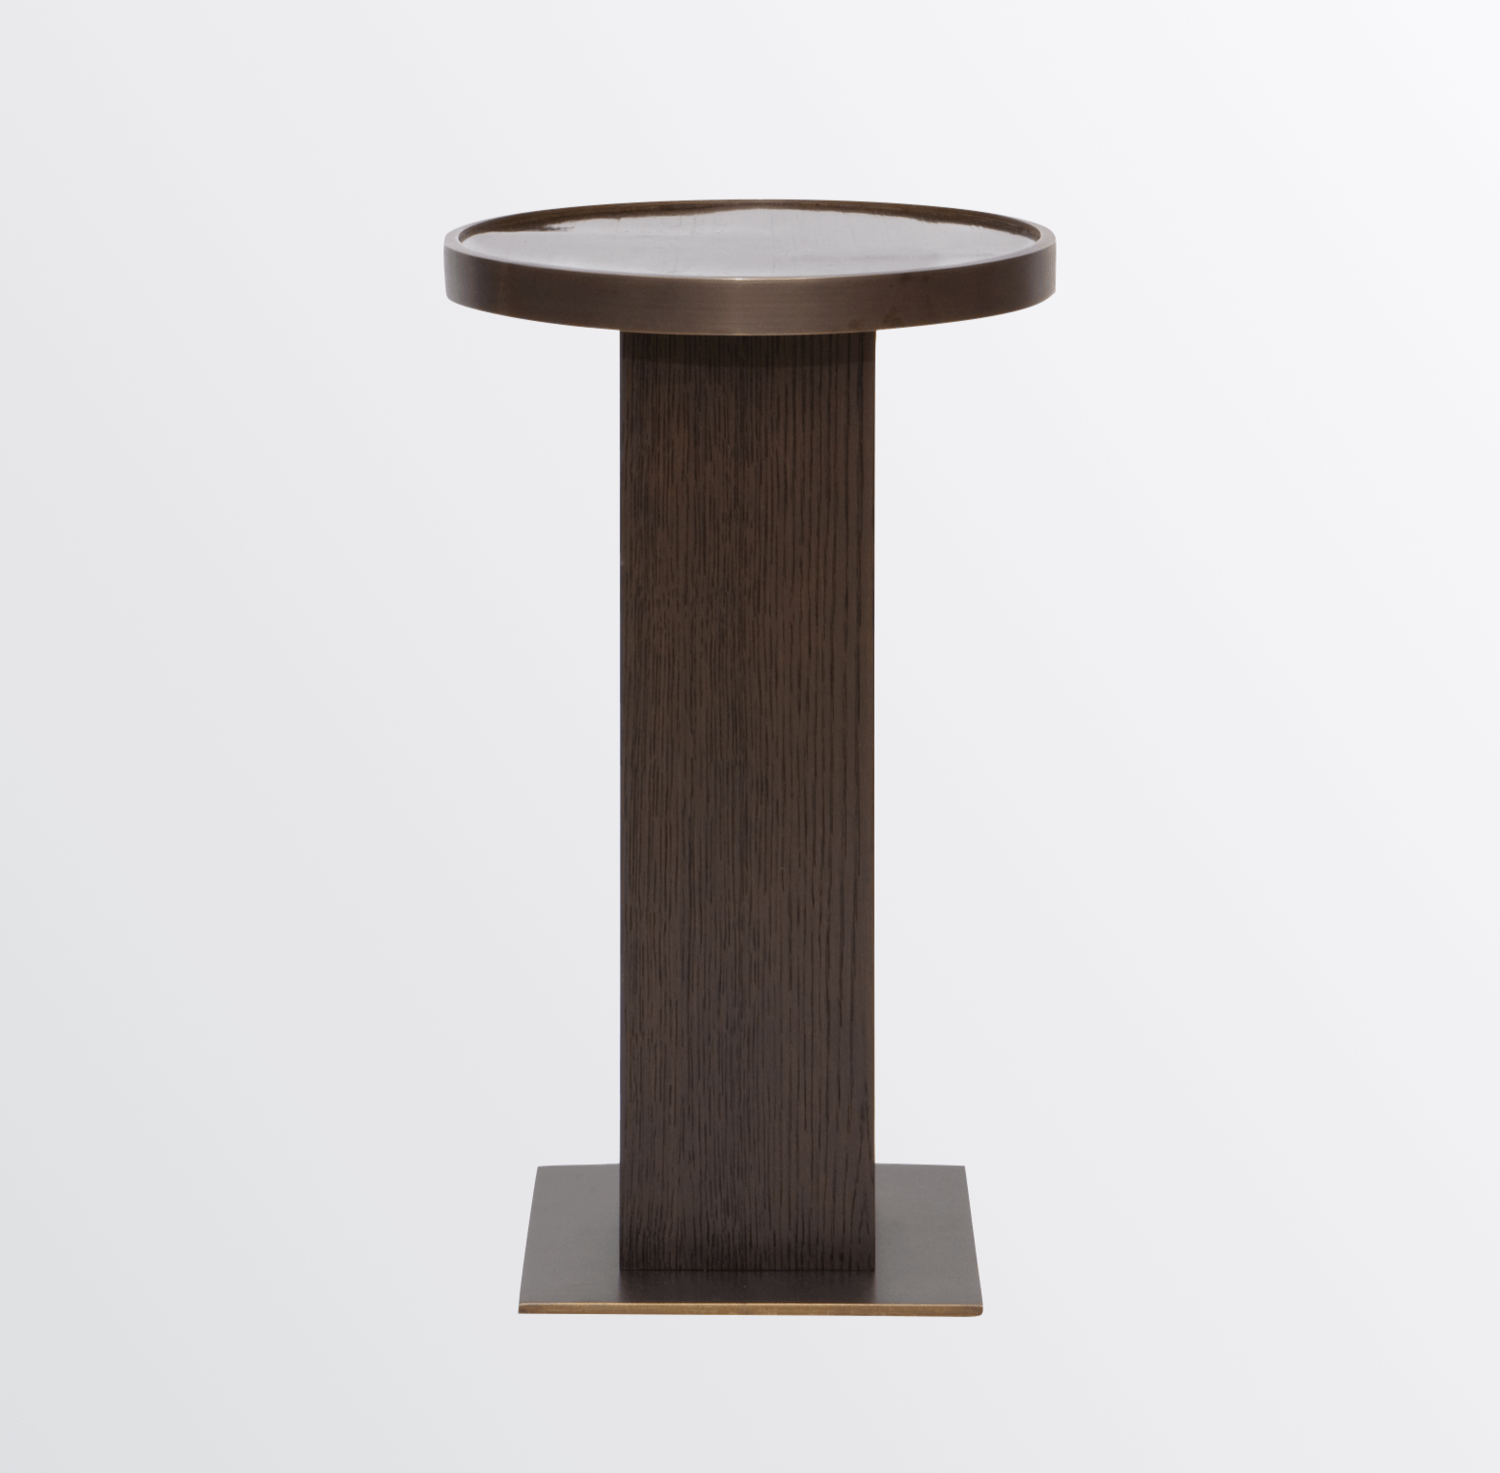 Aguirre Design - Bamboo, Brass and Oak Round Side Table